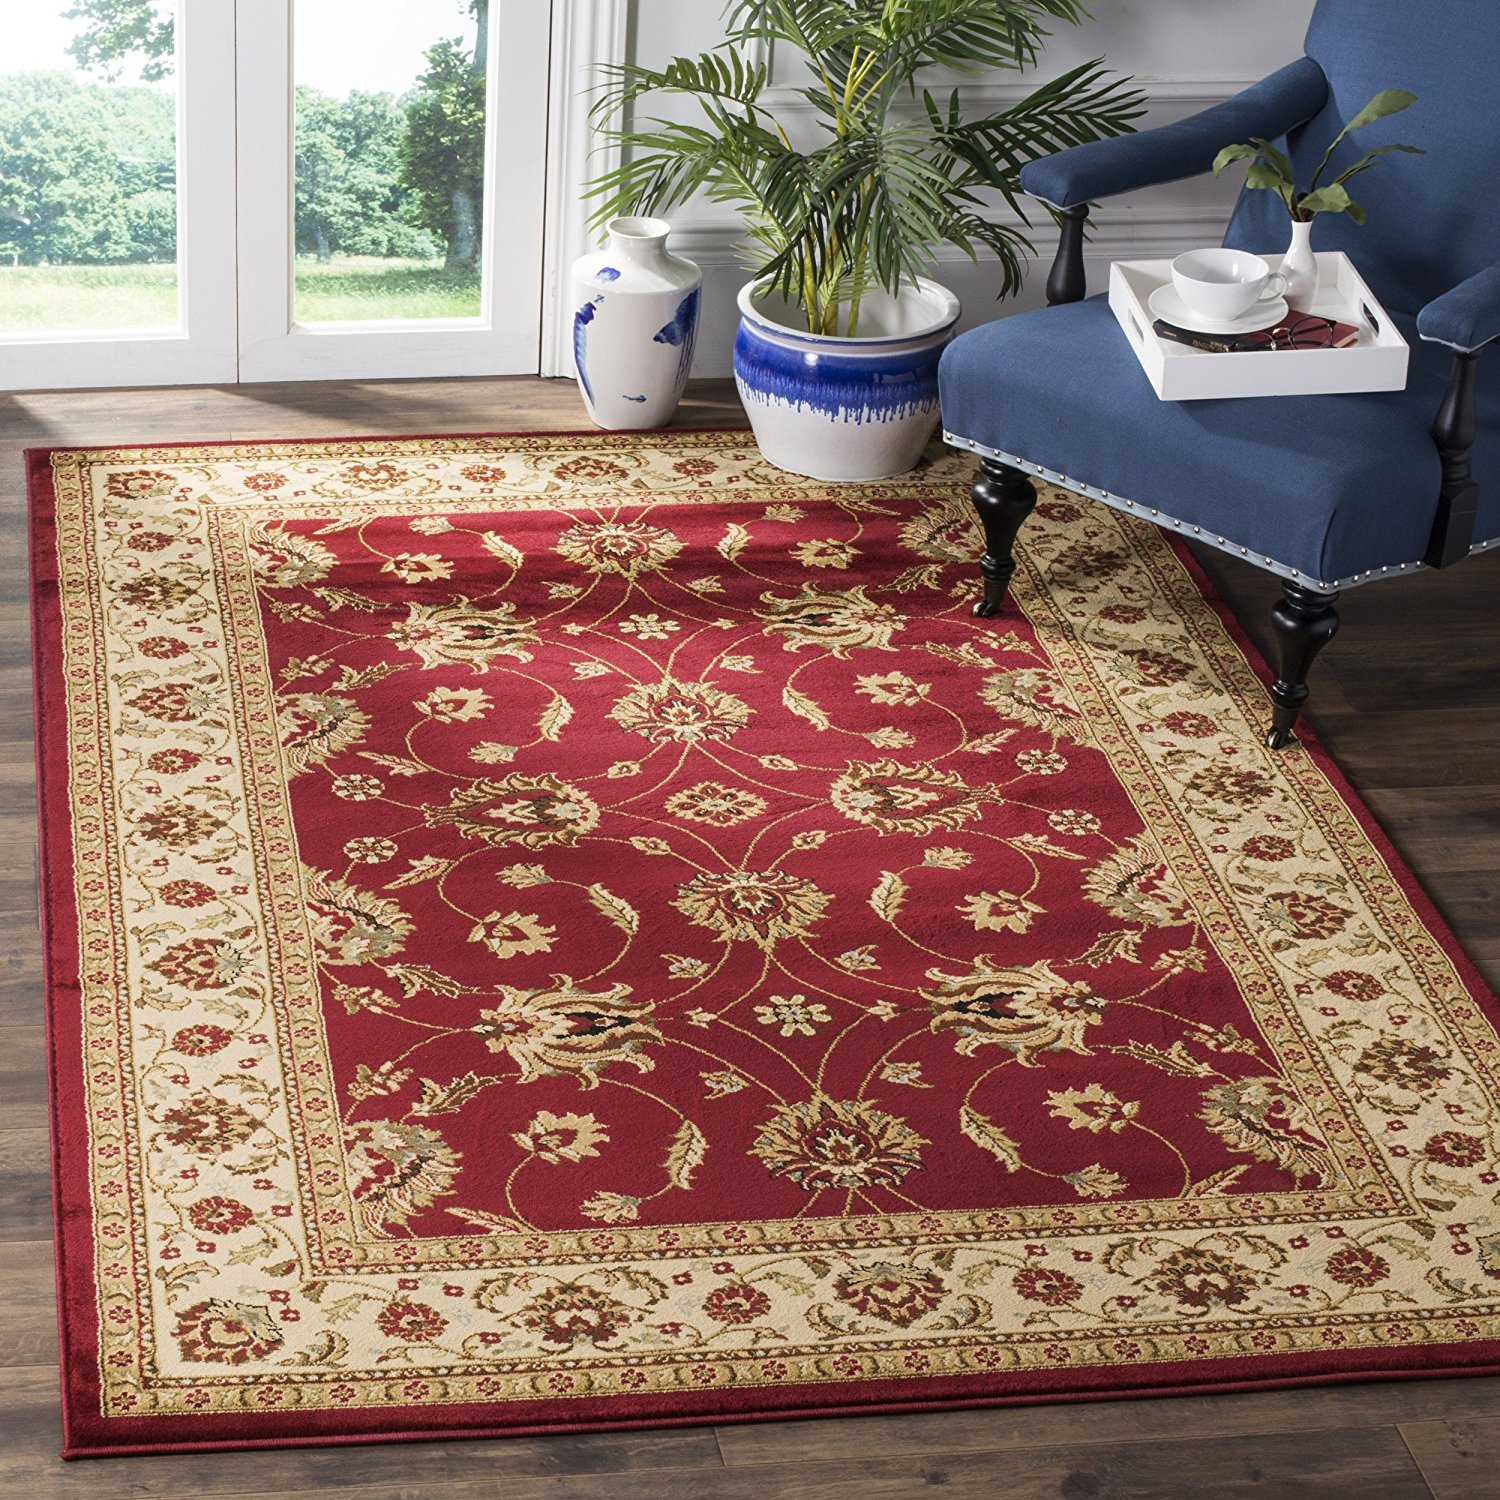 "Safavieh Lyndhurst Collection LNH553-4012 Traditional Floral Red and Ivory Area Rug (5'3"" x 7'6"")"